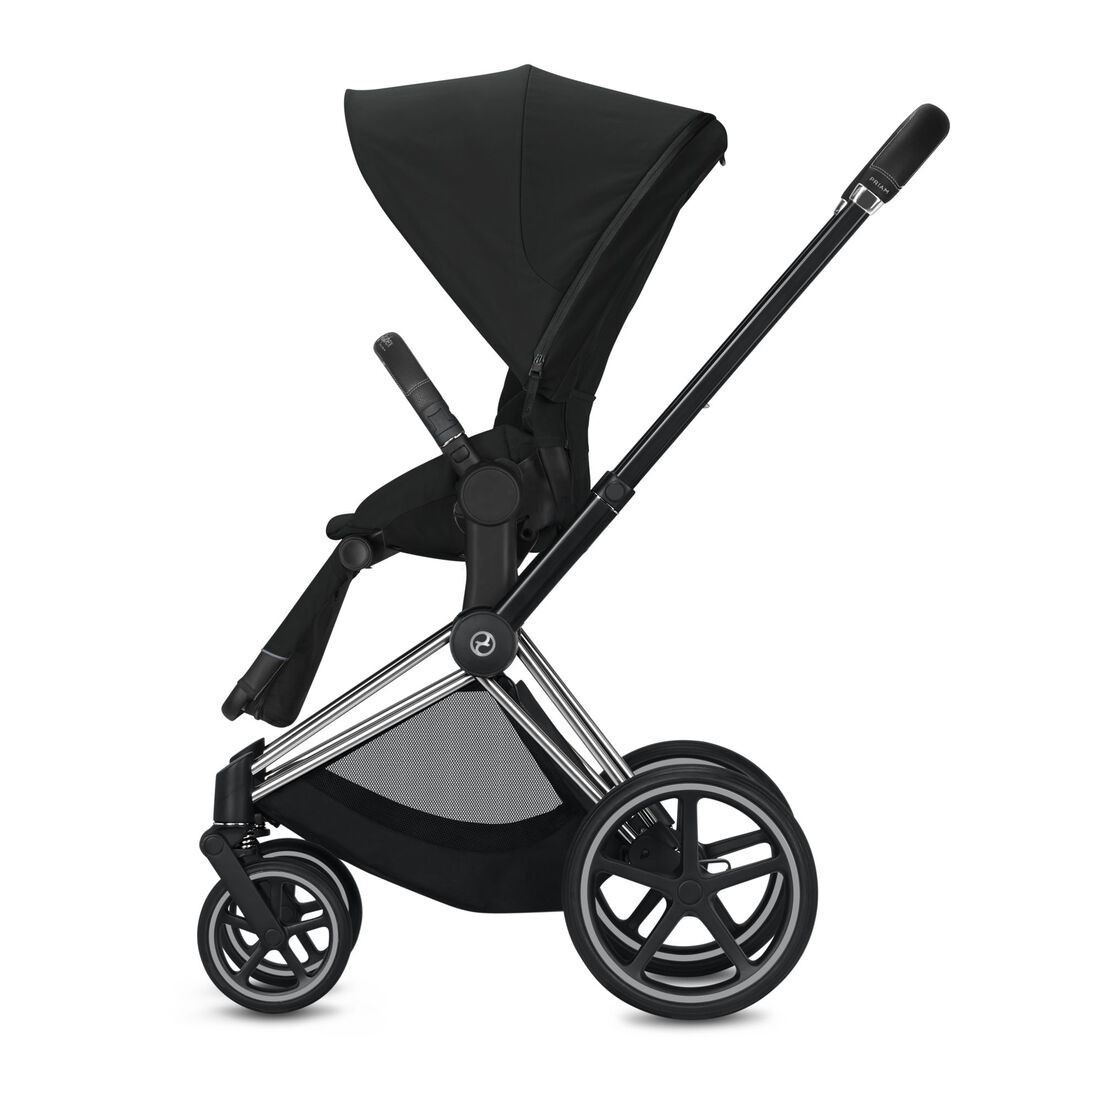 CYBEX Priam Frame - Chrome With Black Details in Chrome With Black Details large image number 3